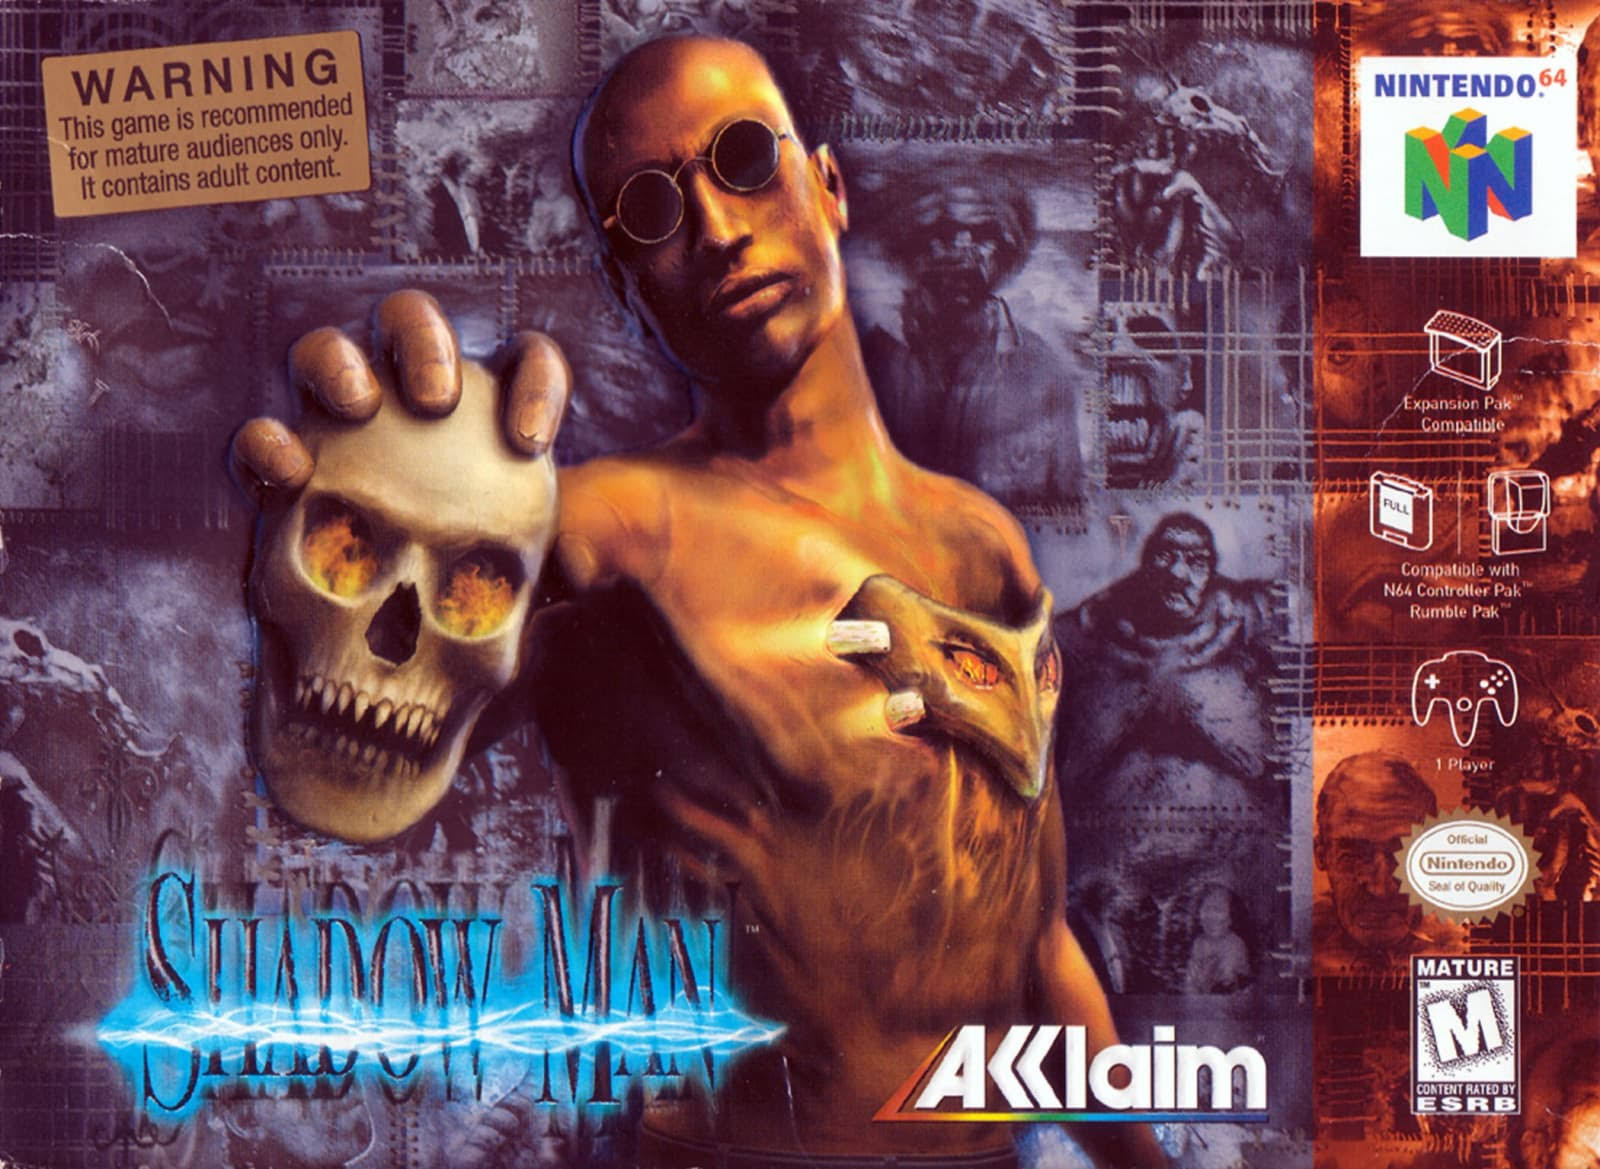 Shadow Man - Nintendo 64